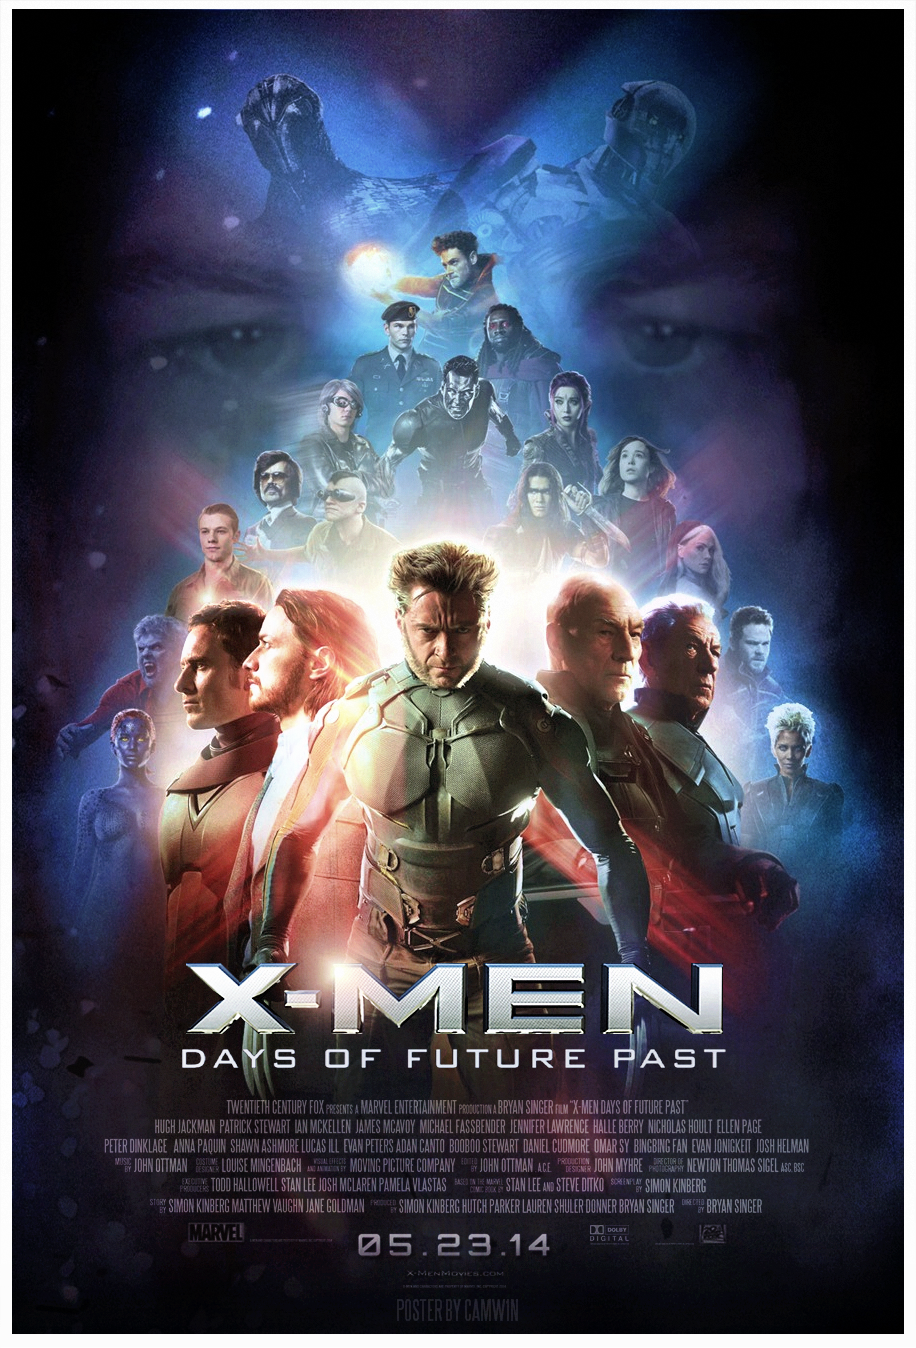 x_men__days_of_future_past___2014____retro_poster_by_camw1n-d7ahfne